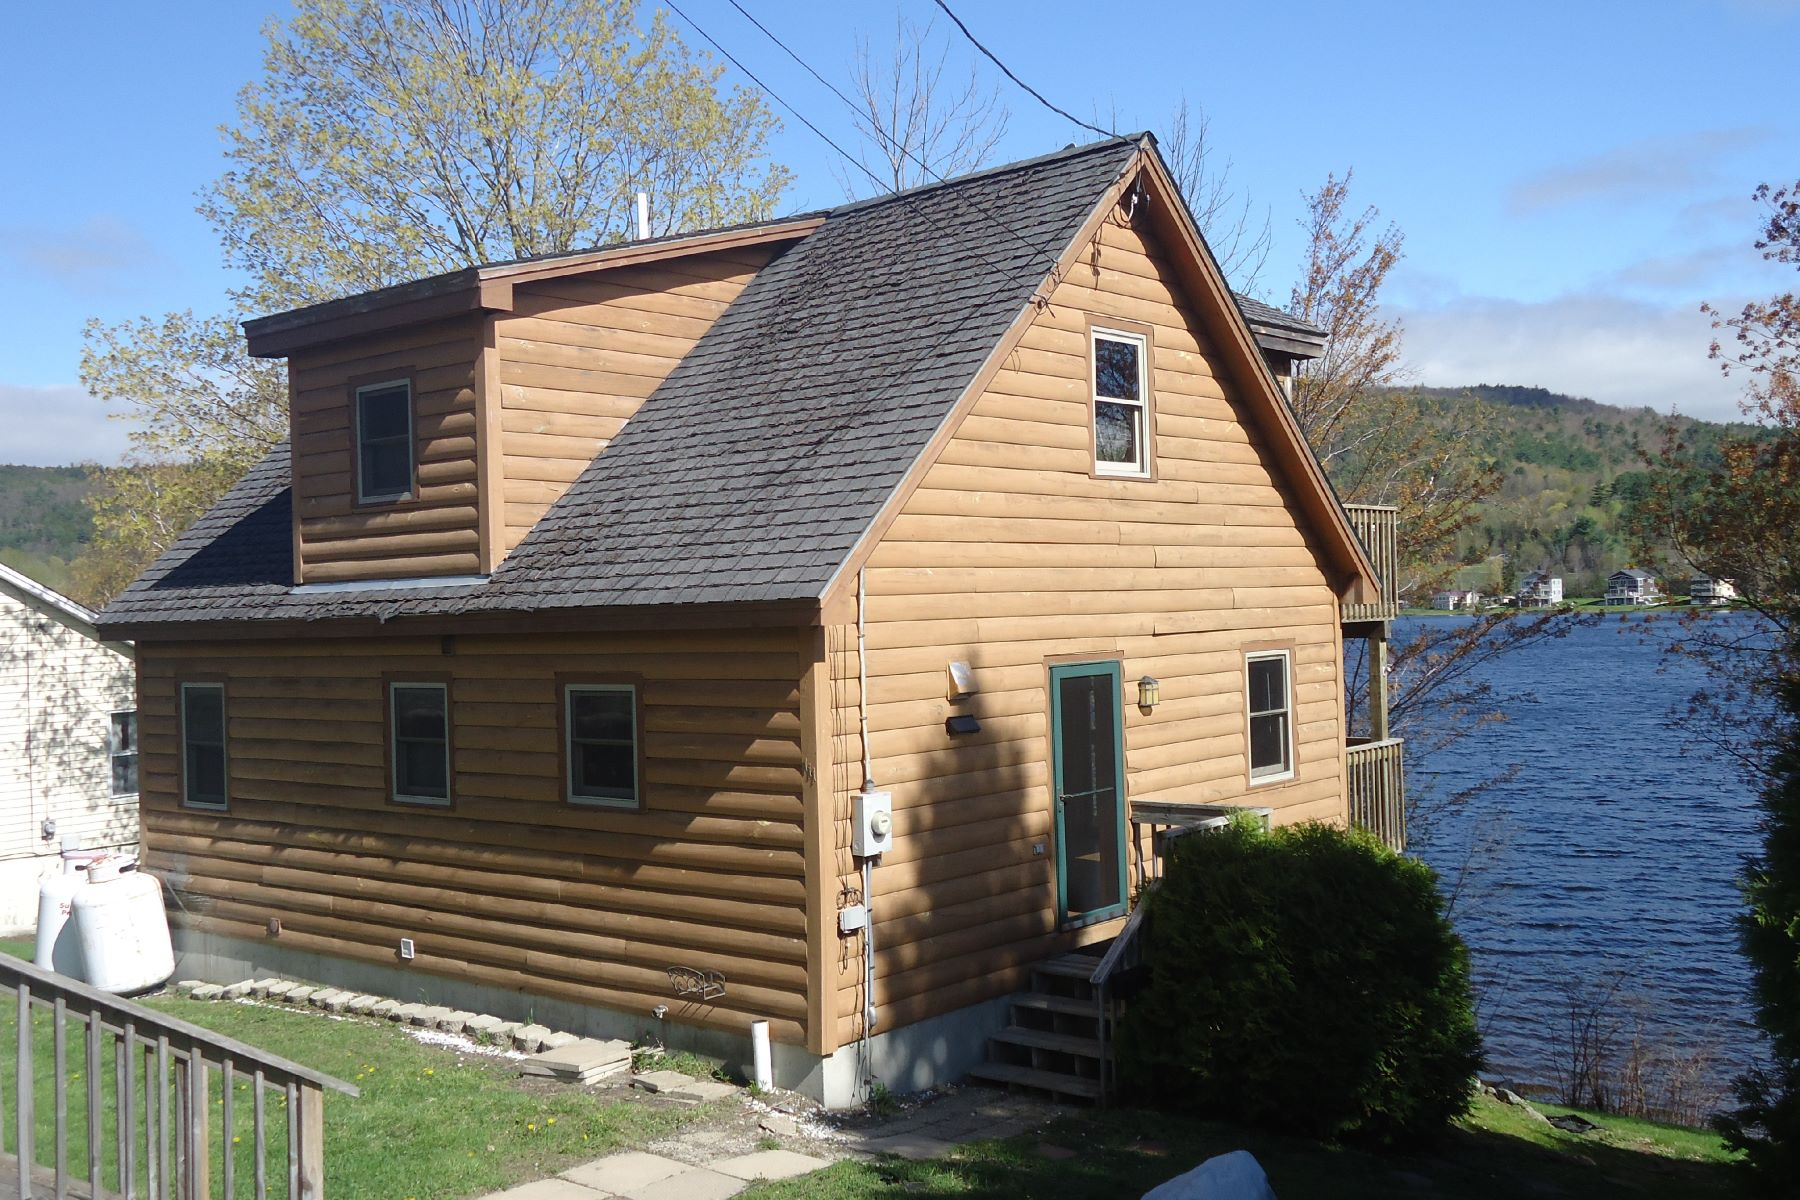 Single Family Home for Sale at Charming Cape on Mascoma Lake 111 Us Route 4a Lebanon, New Hampshire, 03766 United States